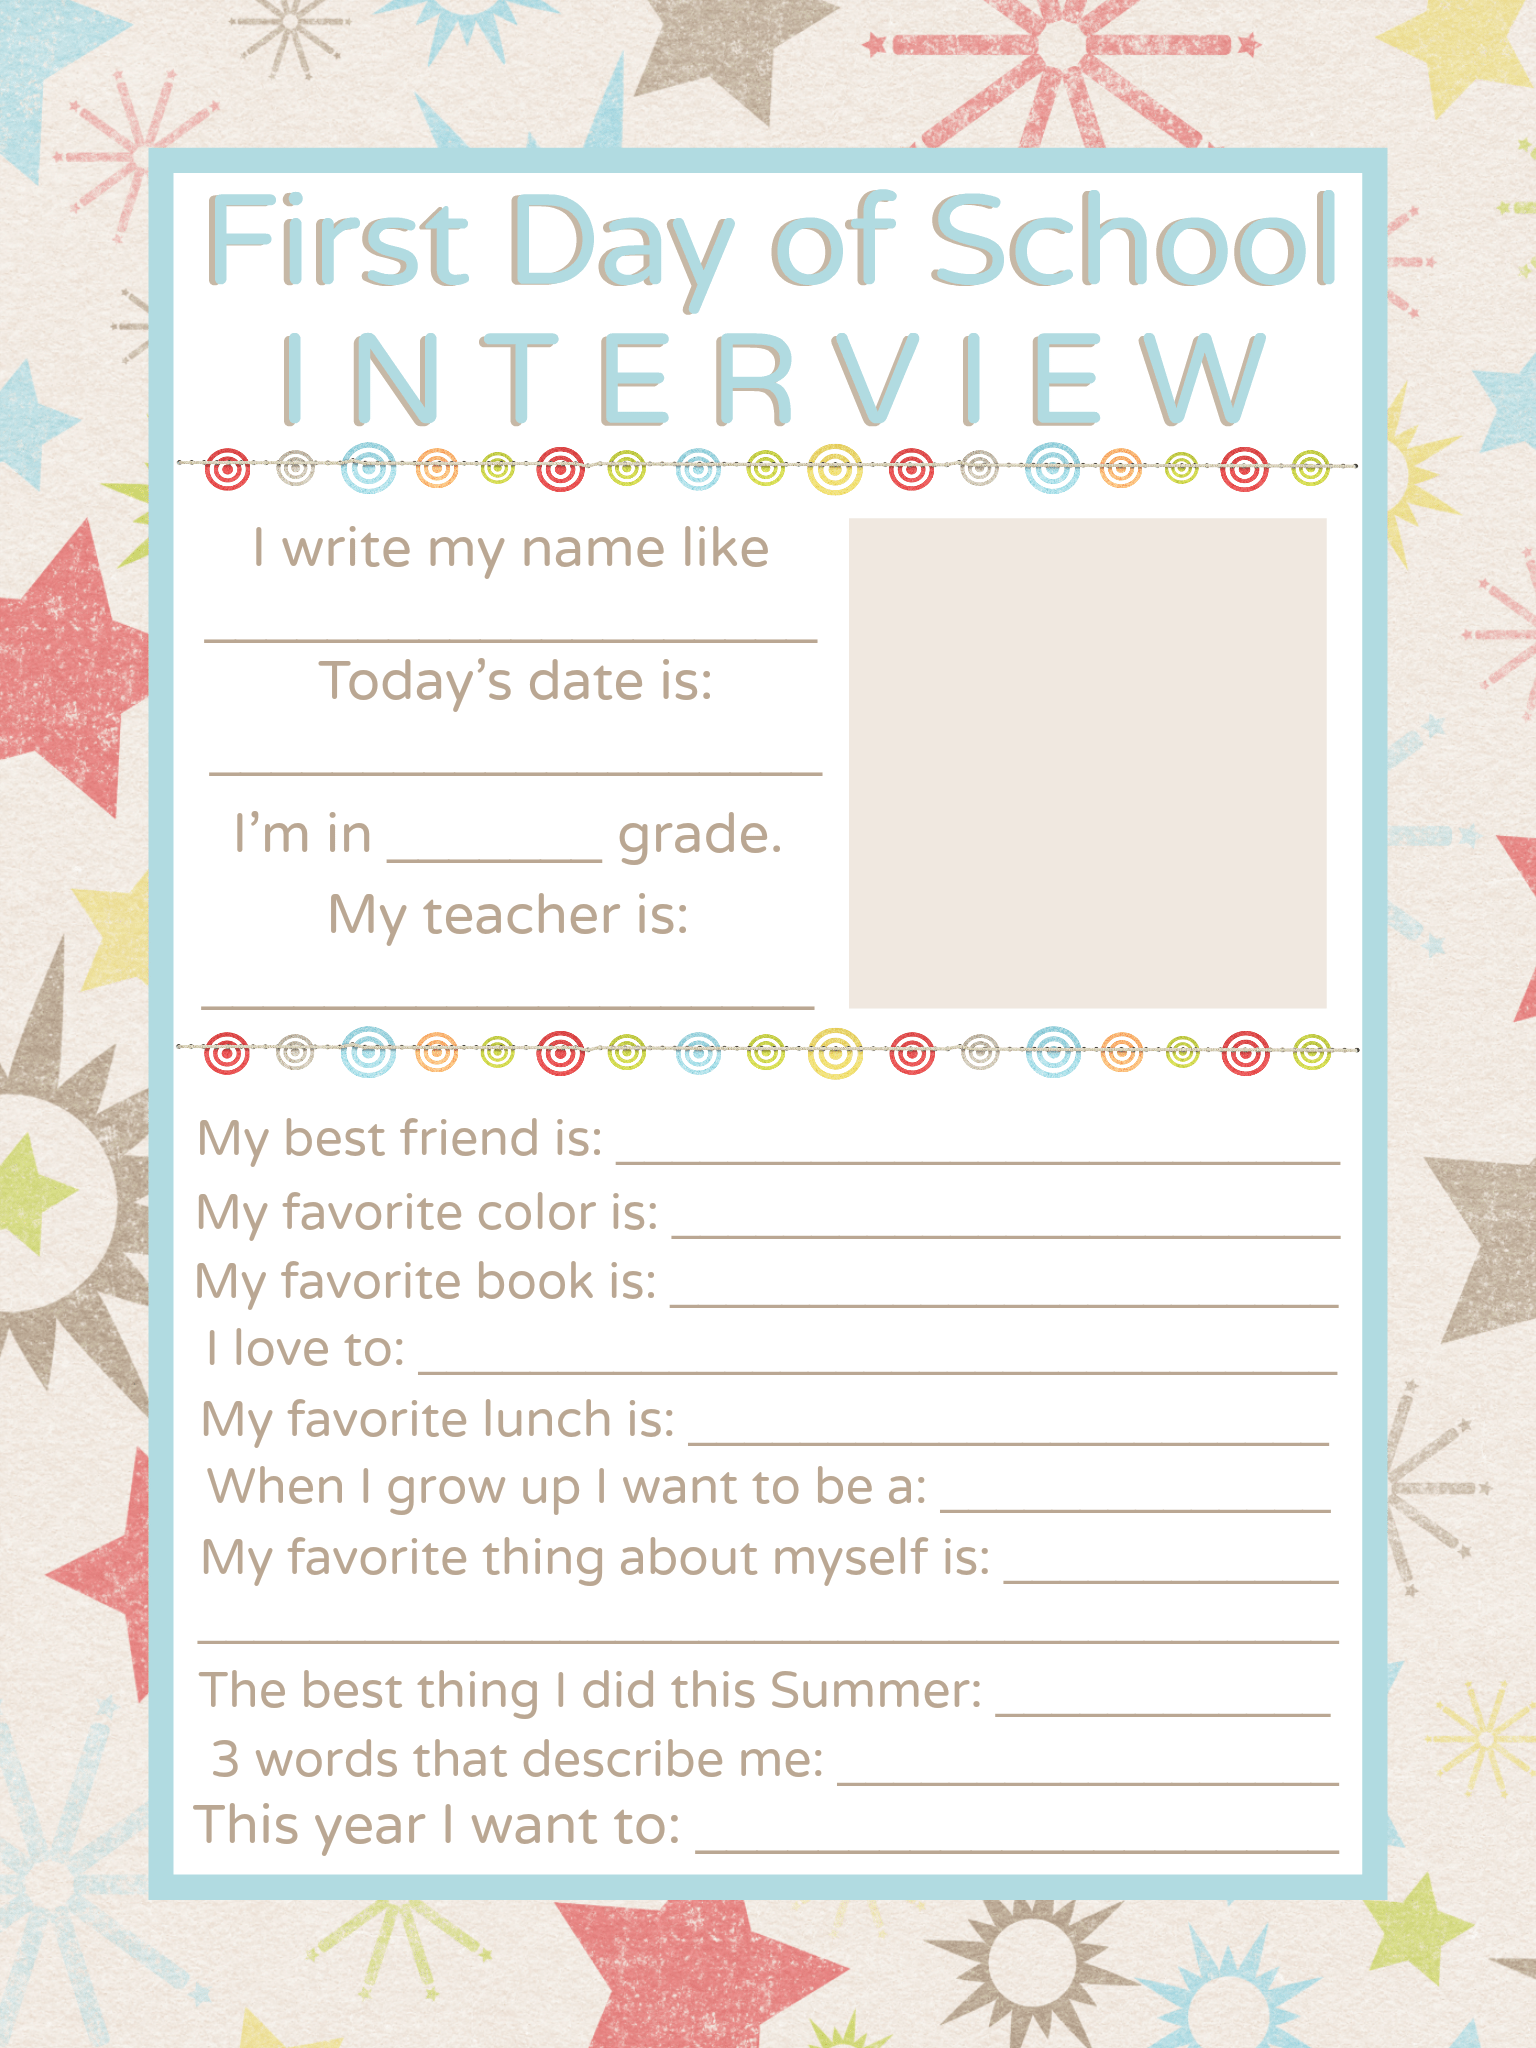 First Day Of School Interview Printable